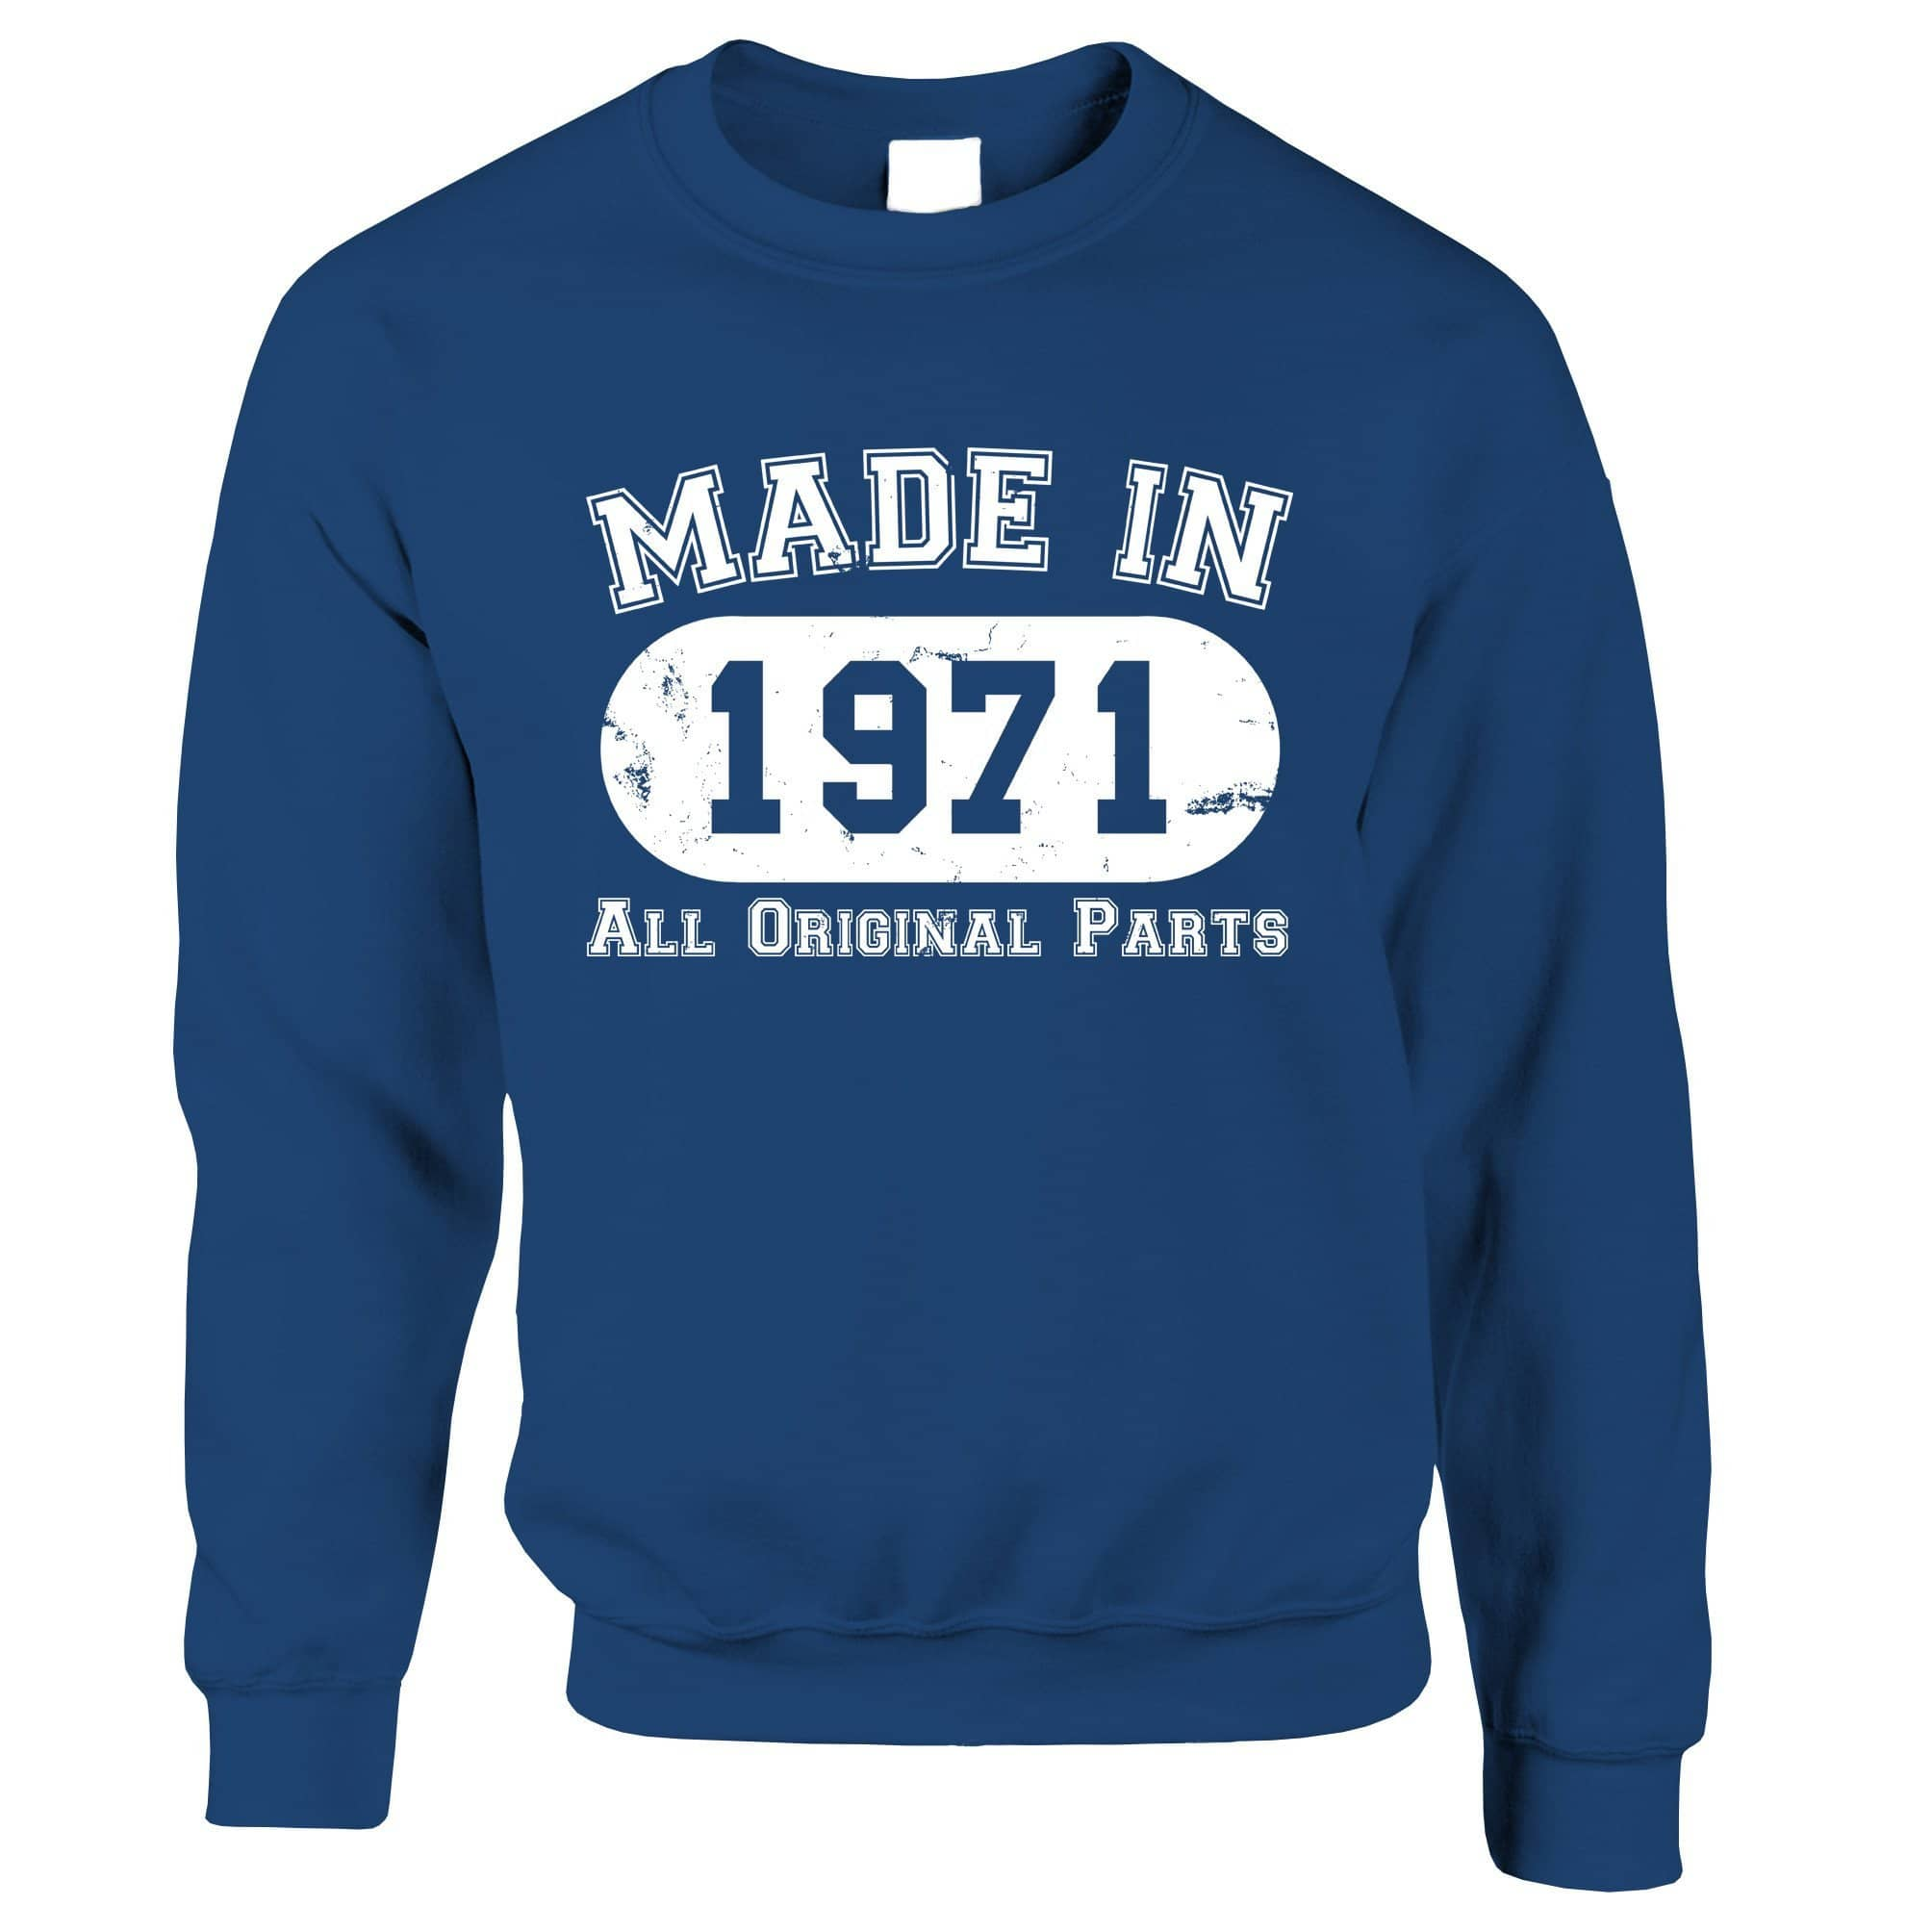 Made in 1971 All Original Parts Sweatshirt Jumper [Distressed]